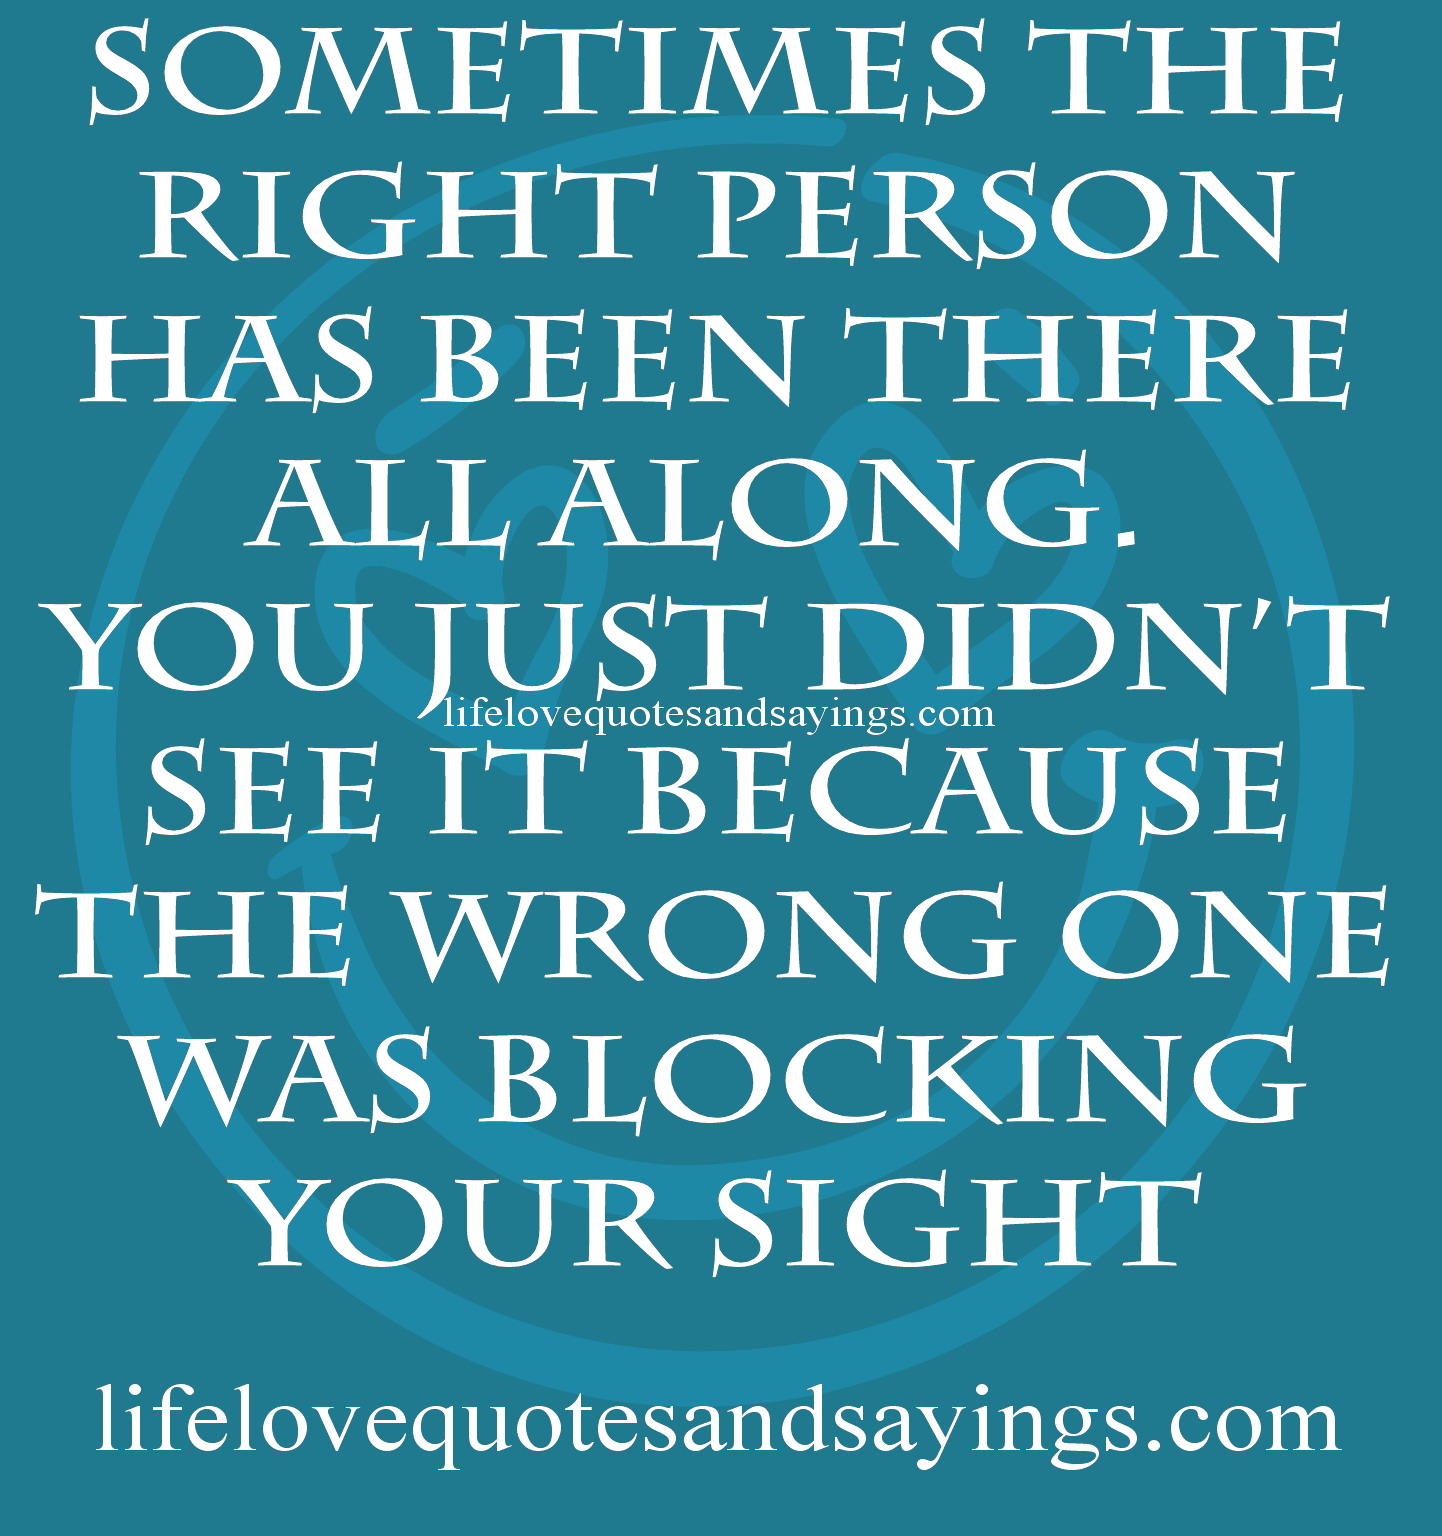 Quotes About Finding The Right Person Quotes about Finding The Right Person (33 quotes) Quotes About Finding The Right Person